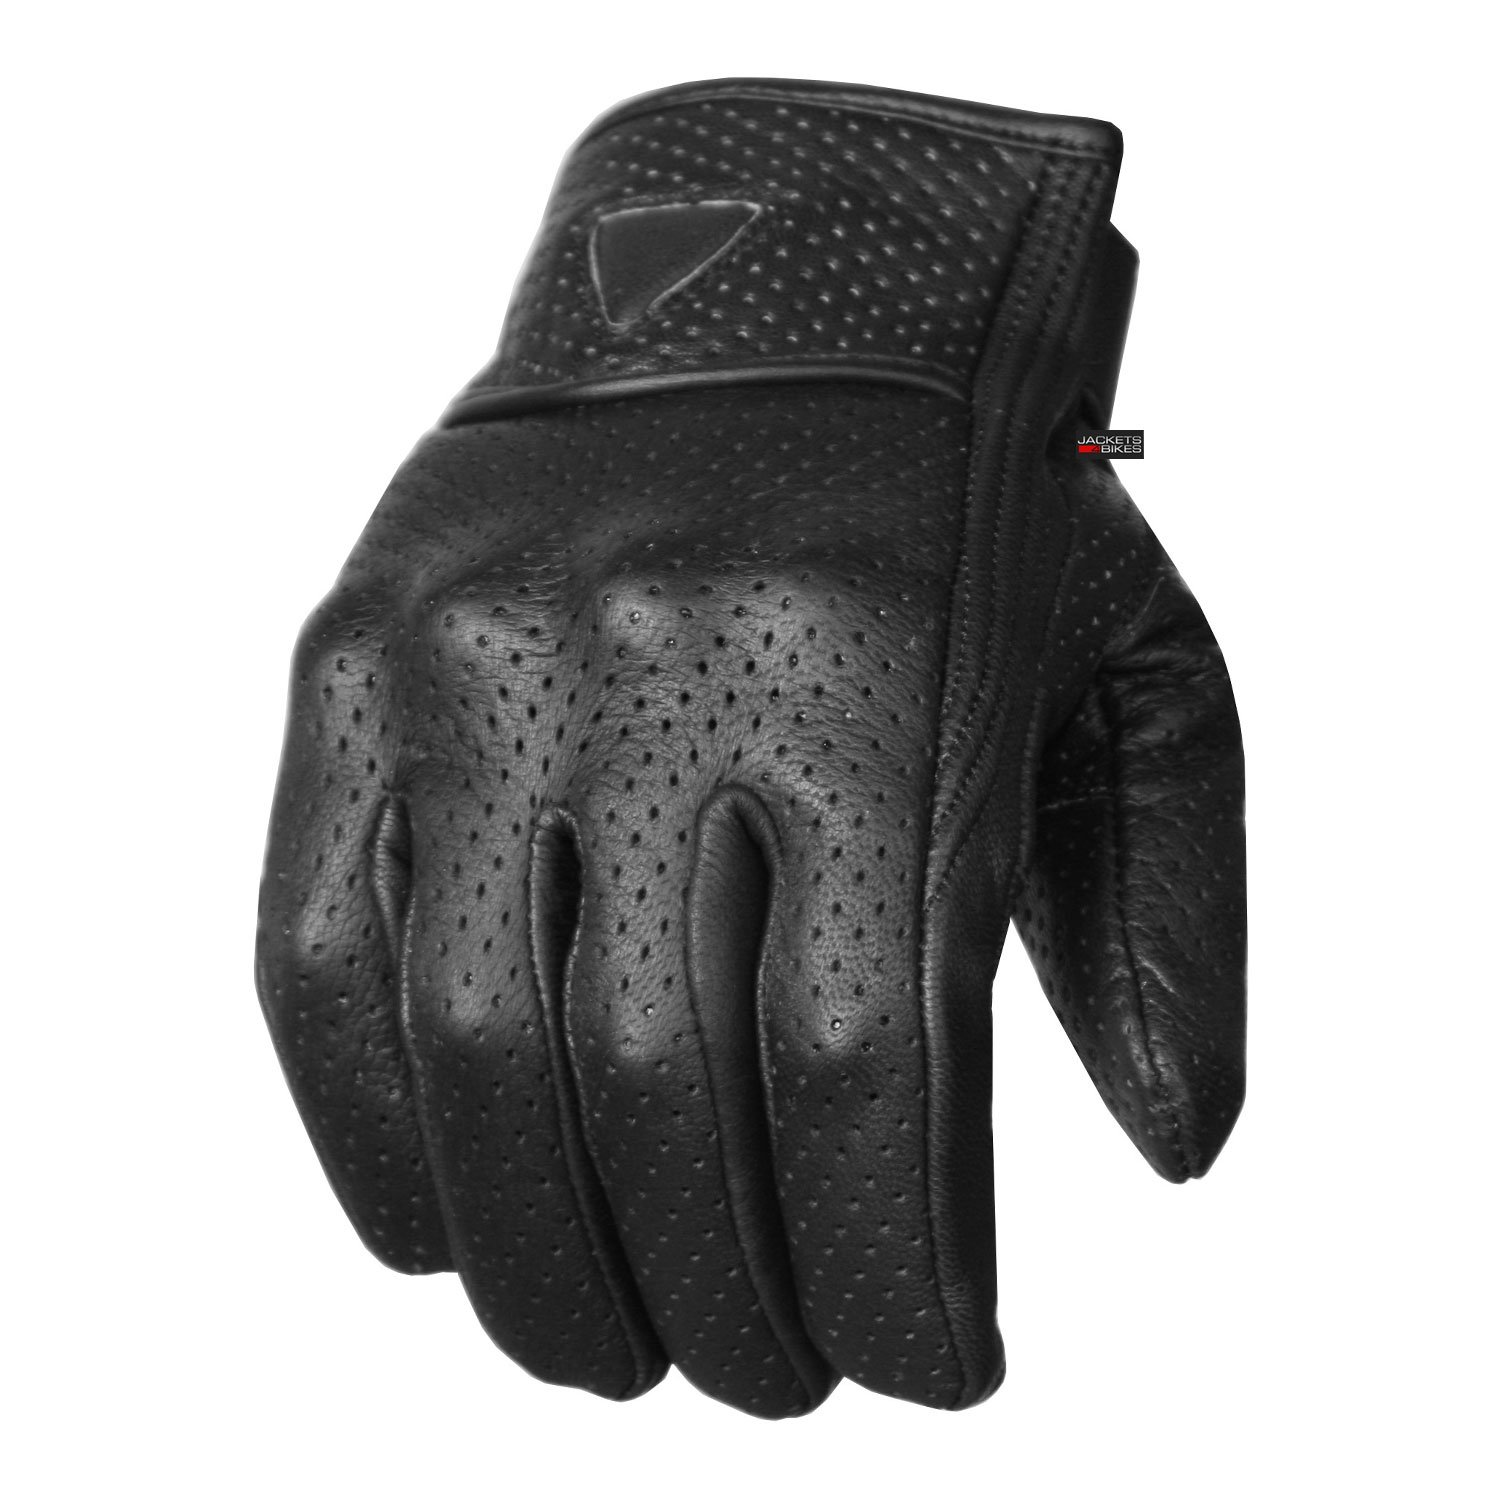 Premium Men's Motorcycle Leather Perforated Cruiser Protective Gel Gloves S